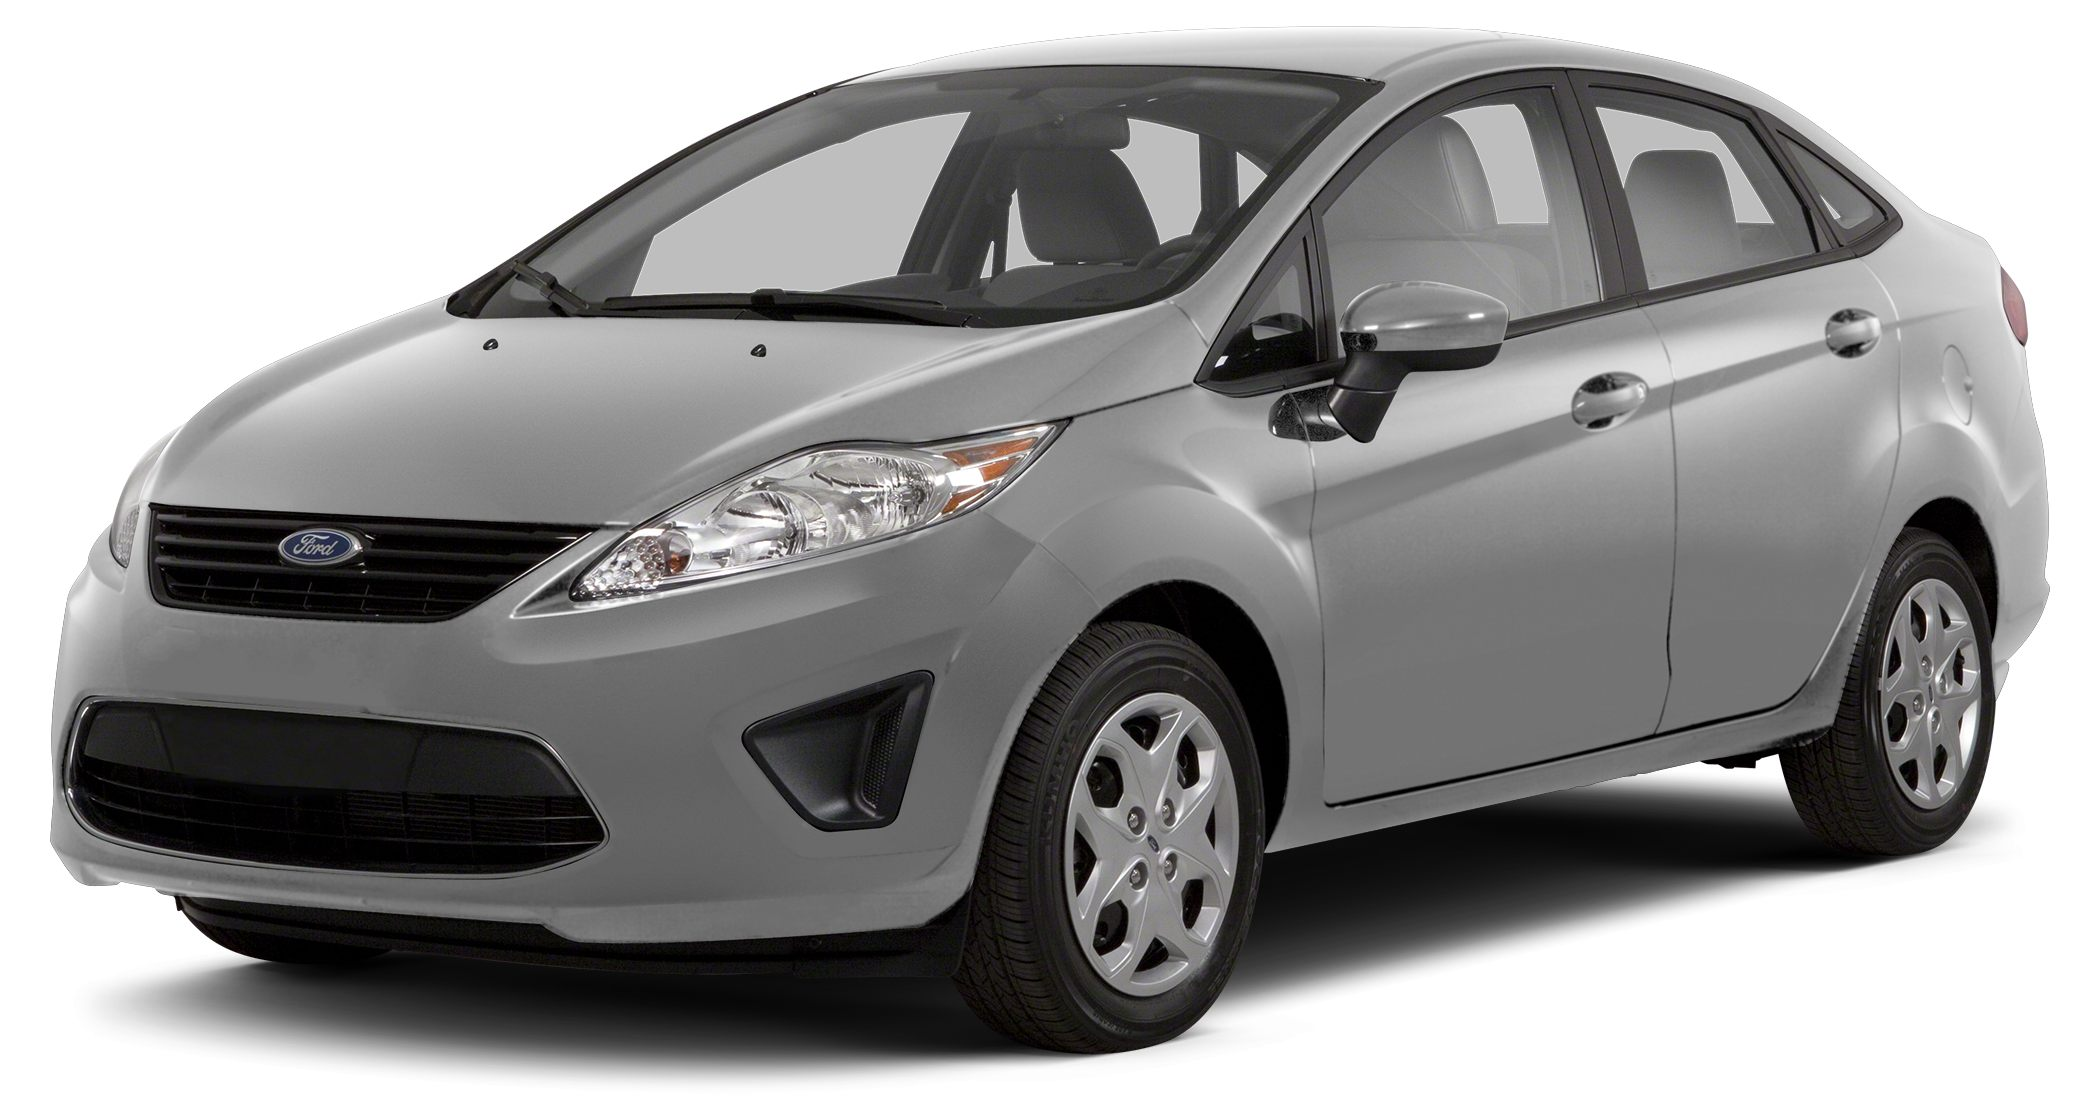 2013 Ford Fiesta SE FUEL EFFICIENT 40 MPG Hwy29 MPG City Ford Certified Spotless LOW MILES - 7